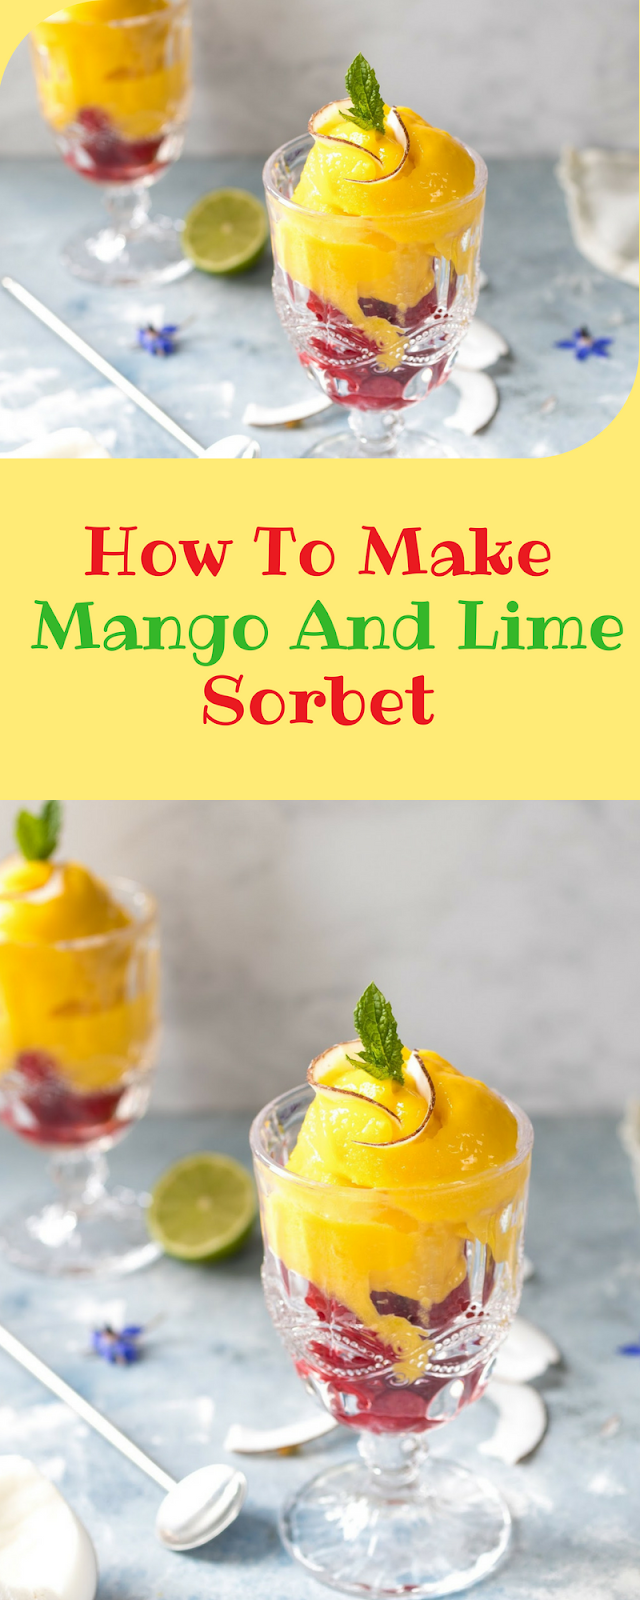 How To Make Mango And Lime Sorbet